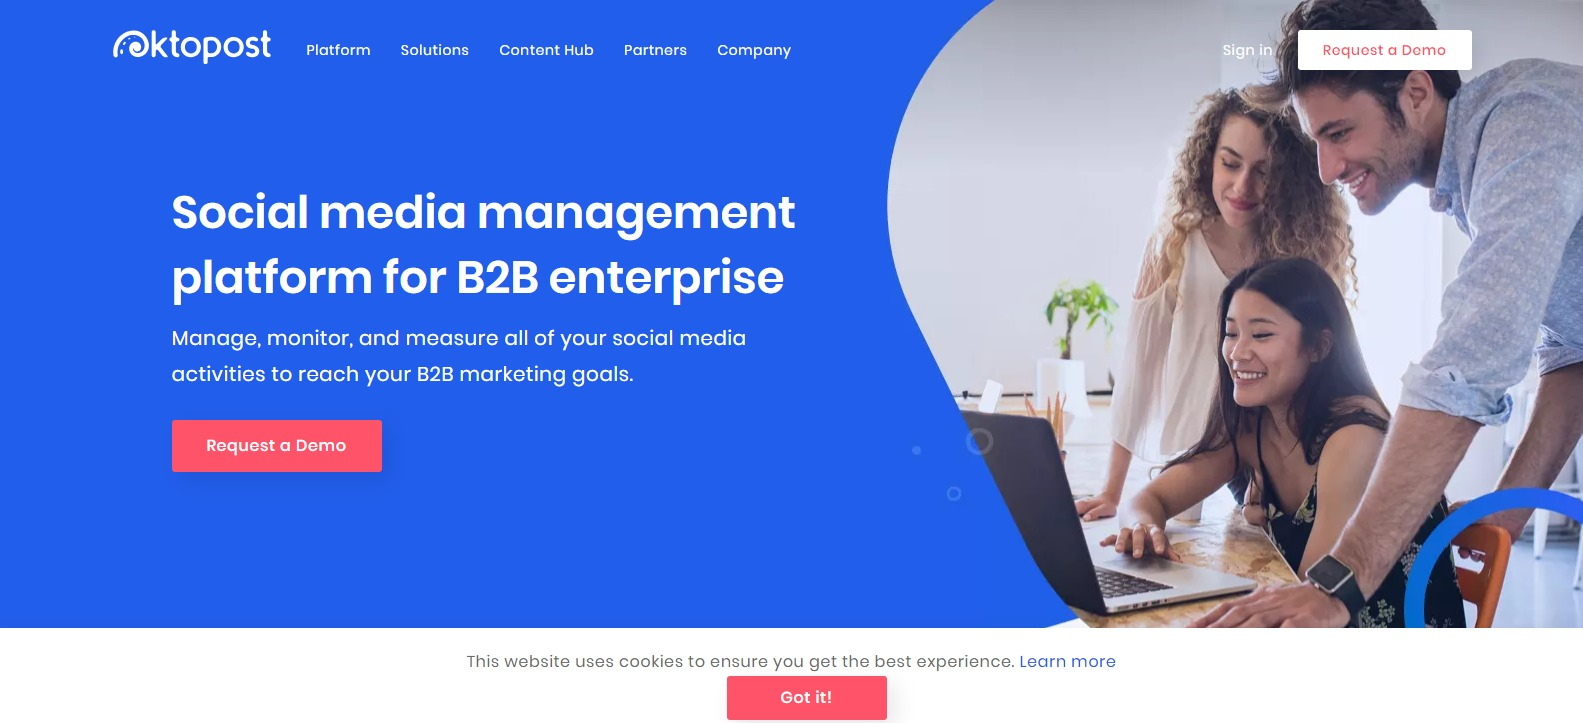 Oktopost - Social Media Management Platform for B2B Enterprises